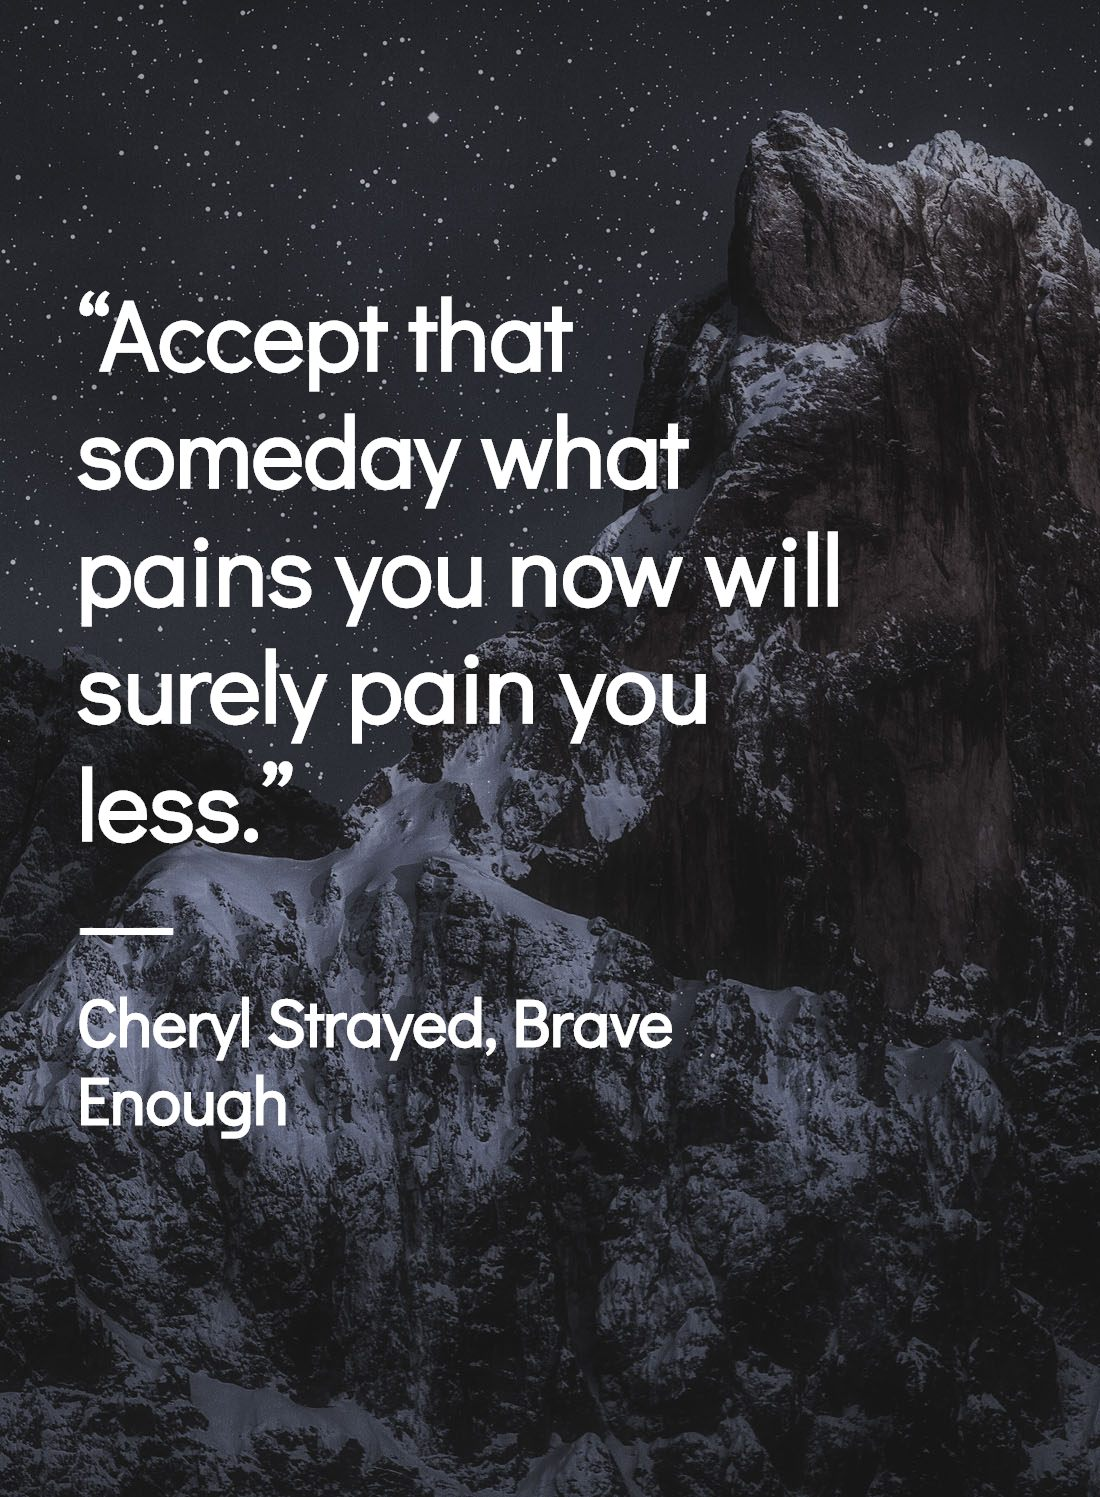 Brave Enough Cheryl Strayed Quotes